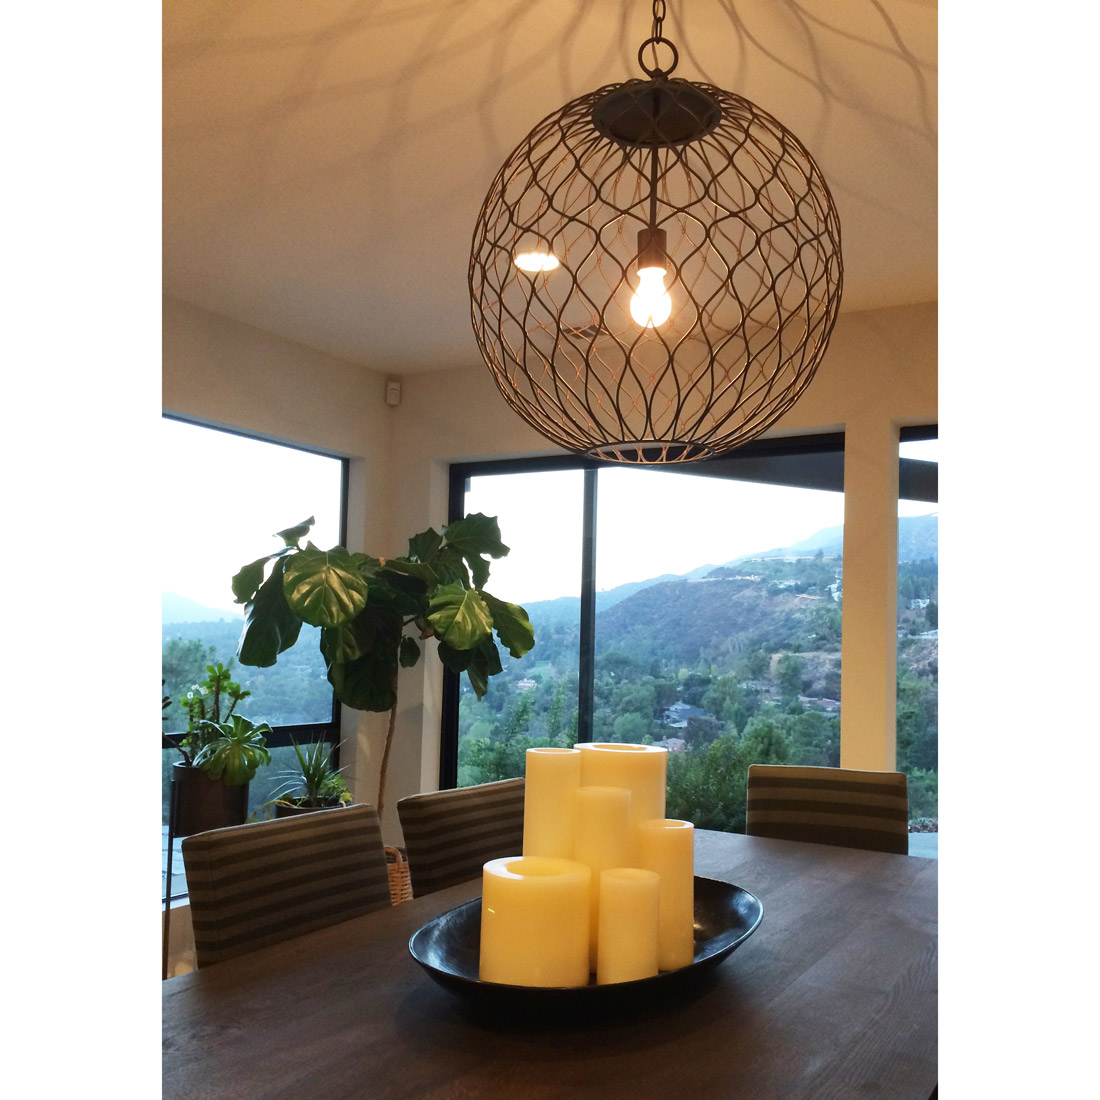 dining table with candle centerpiece and metal cage pendant light over looking the canyon and potted succulents and fiddle leaf fig design by sara bates interior design